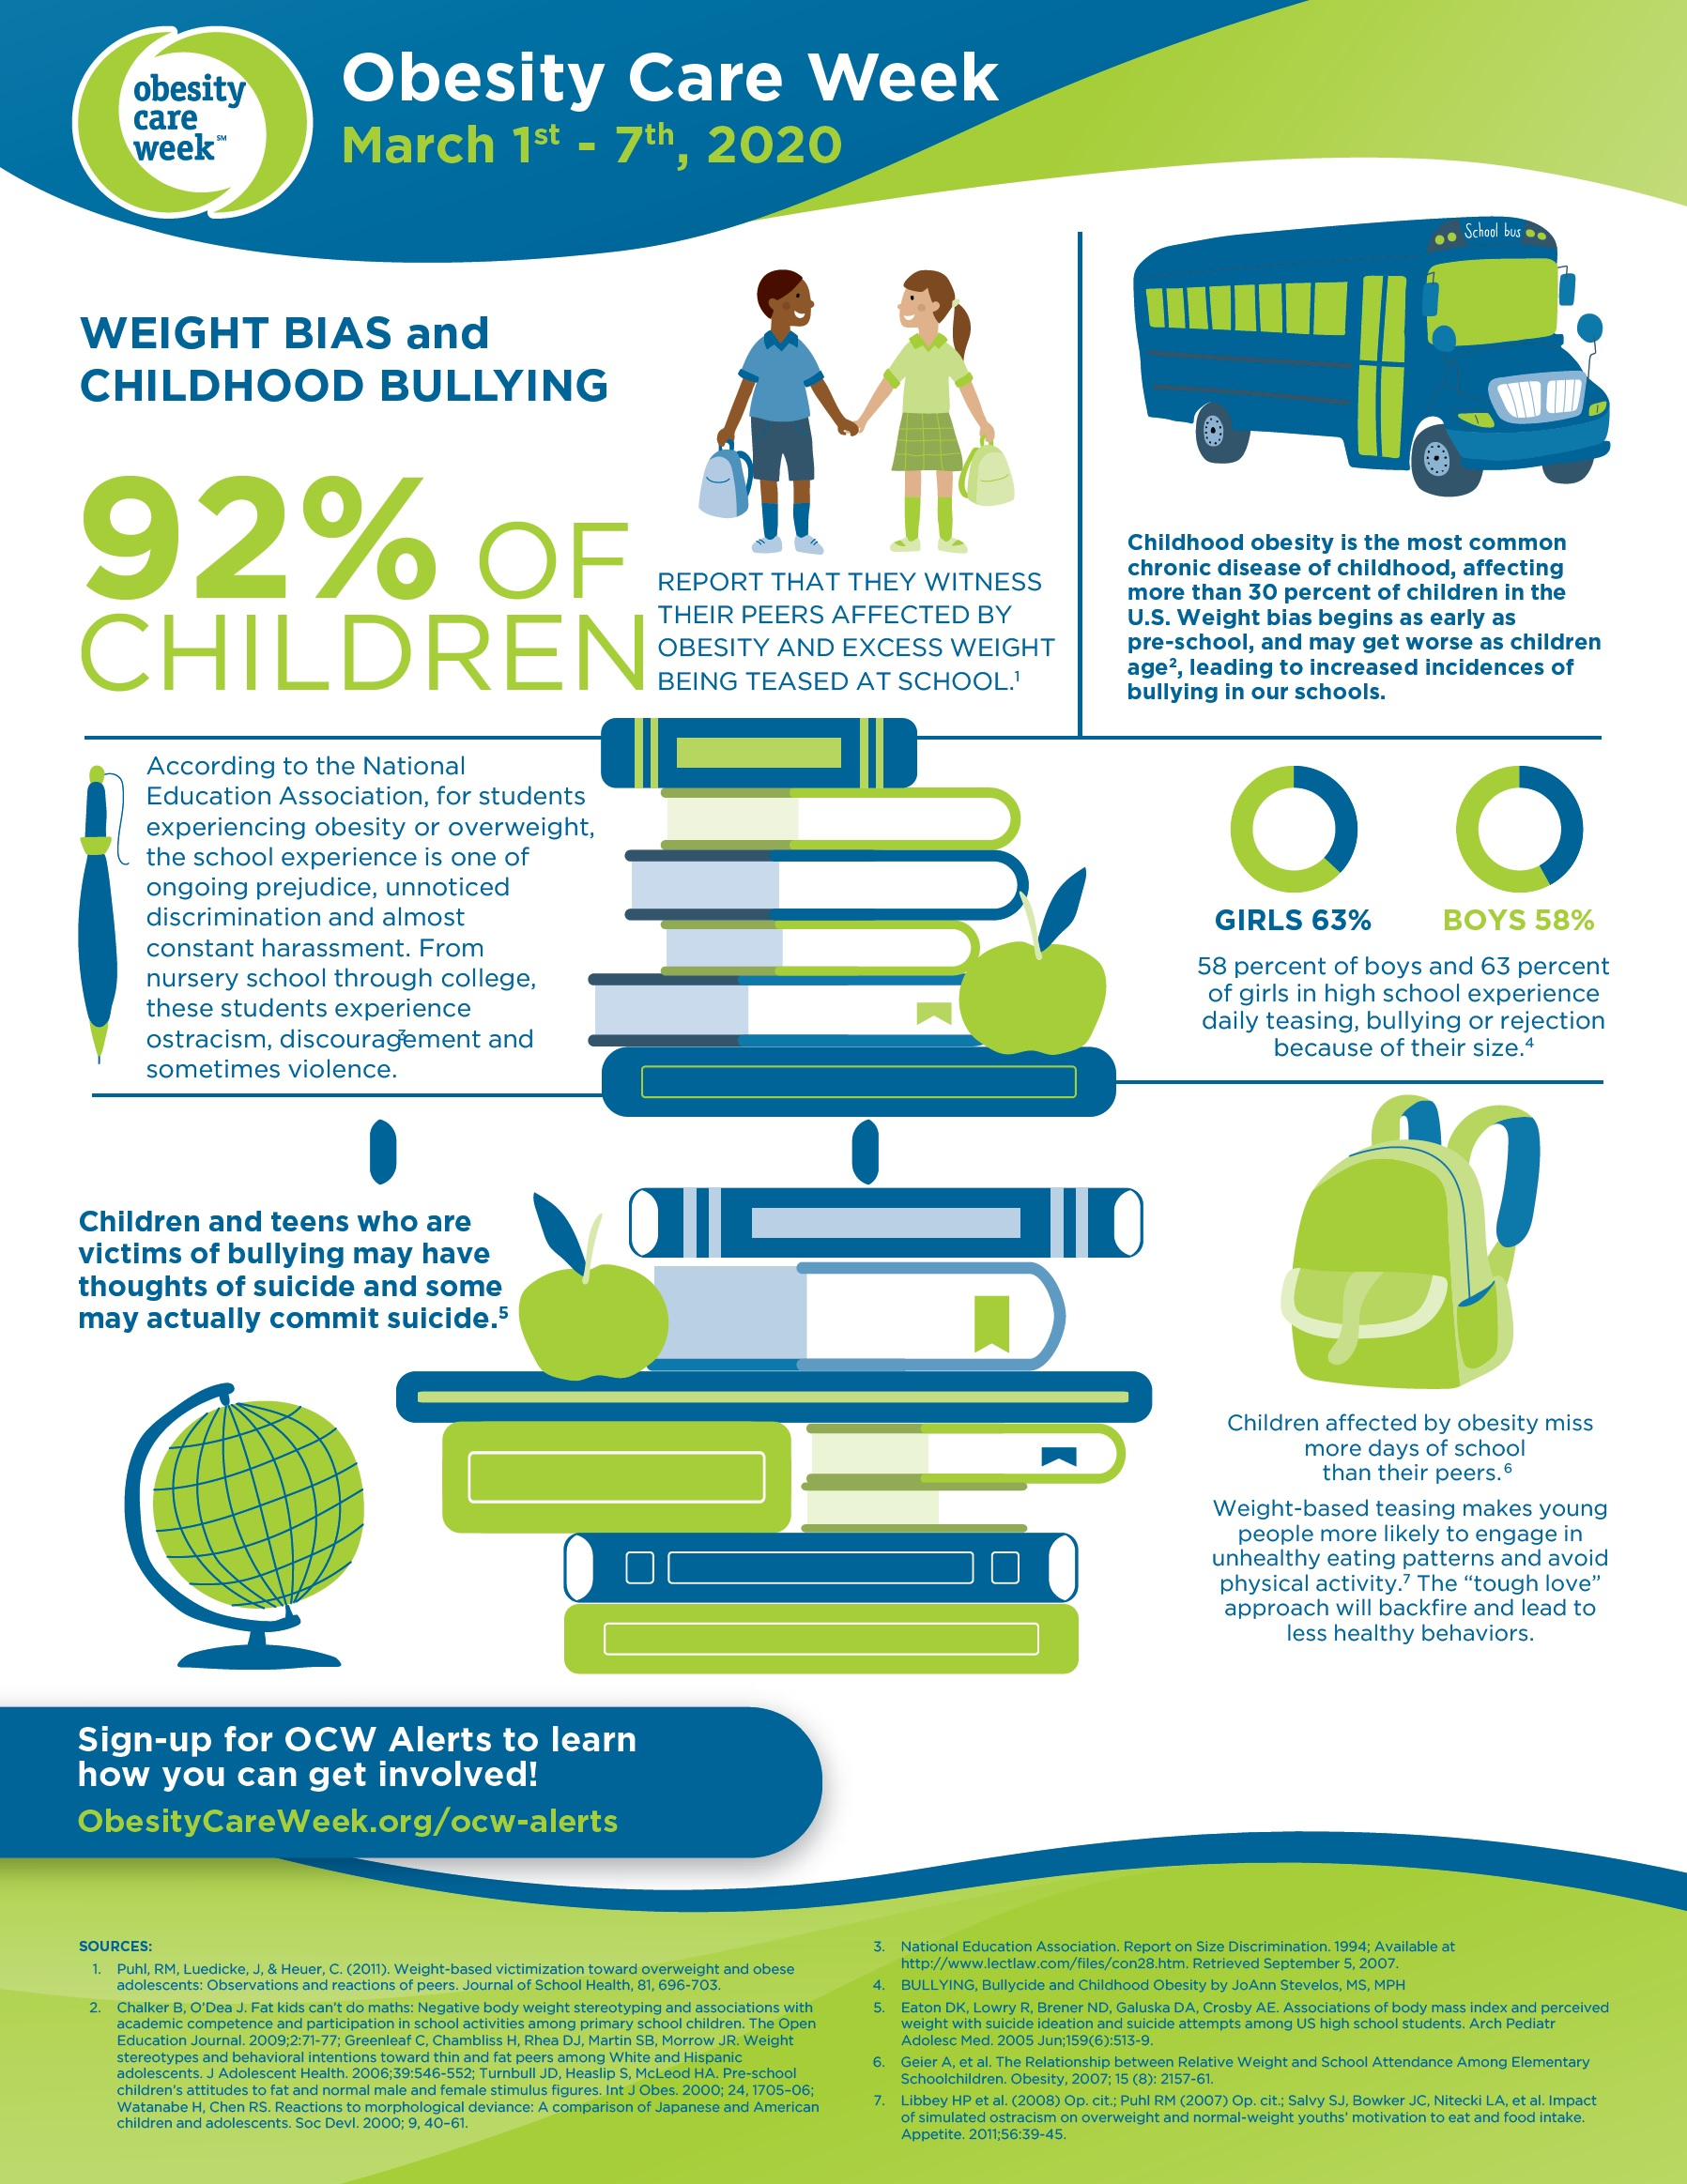 OCW2020 Weight Bias and Childhood Bullying